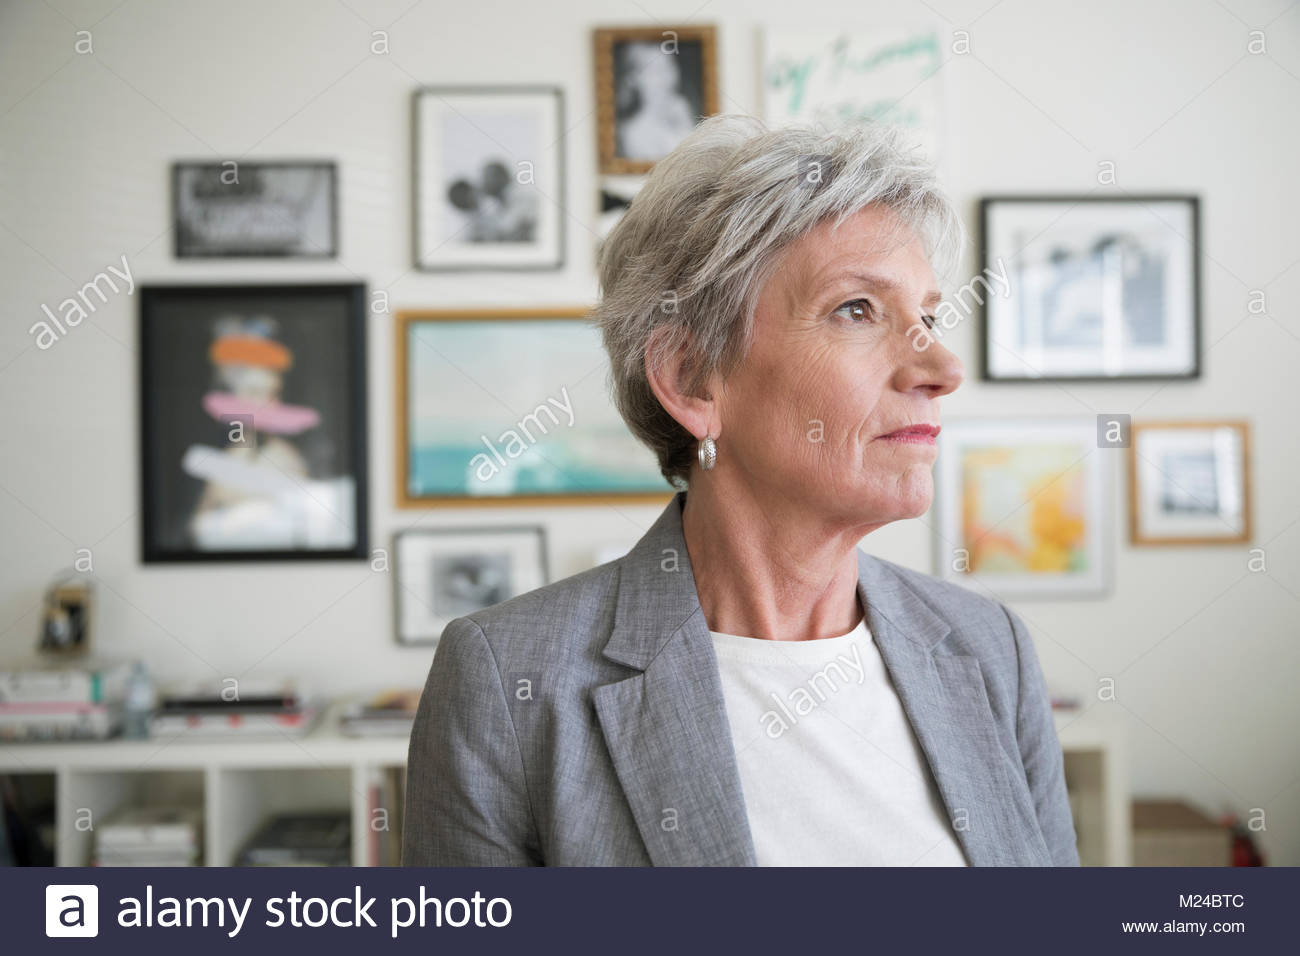 Thoughtful, forward looking businesswoman - Stock Image